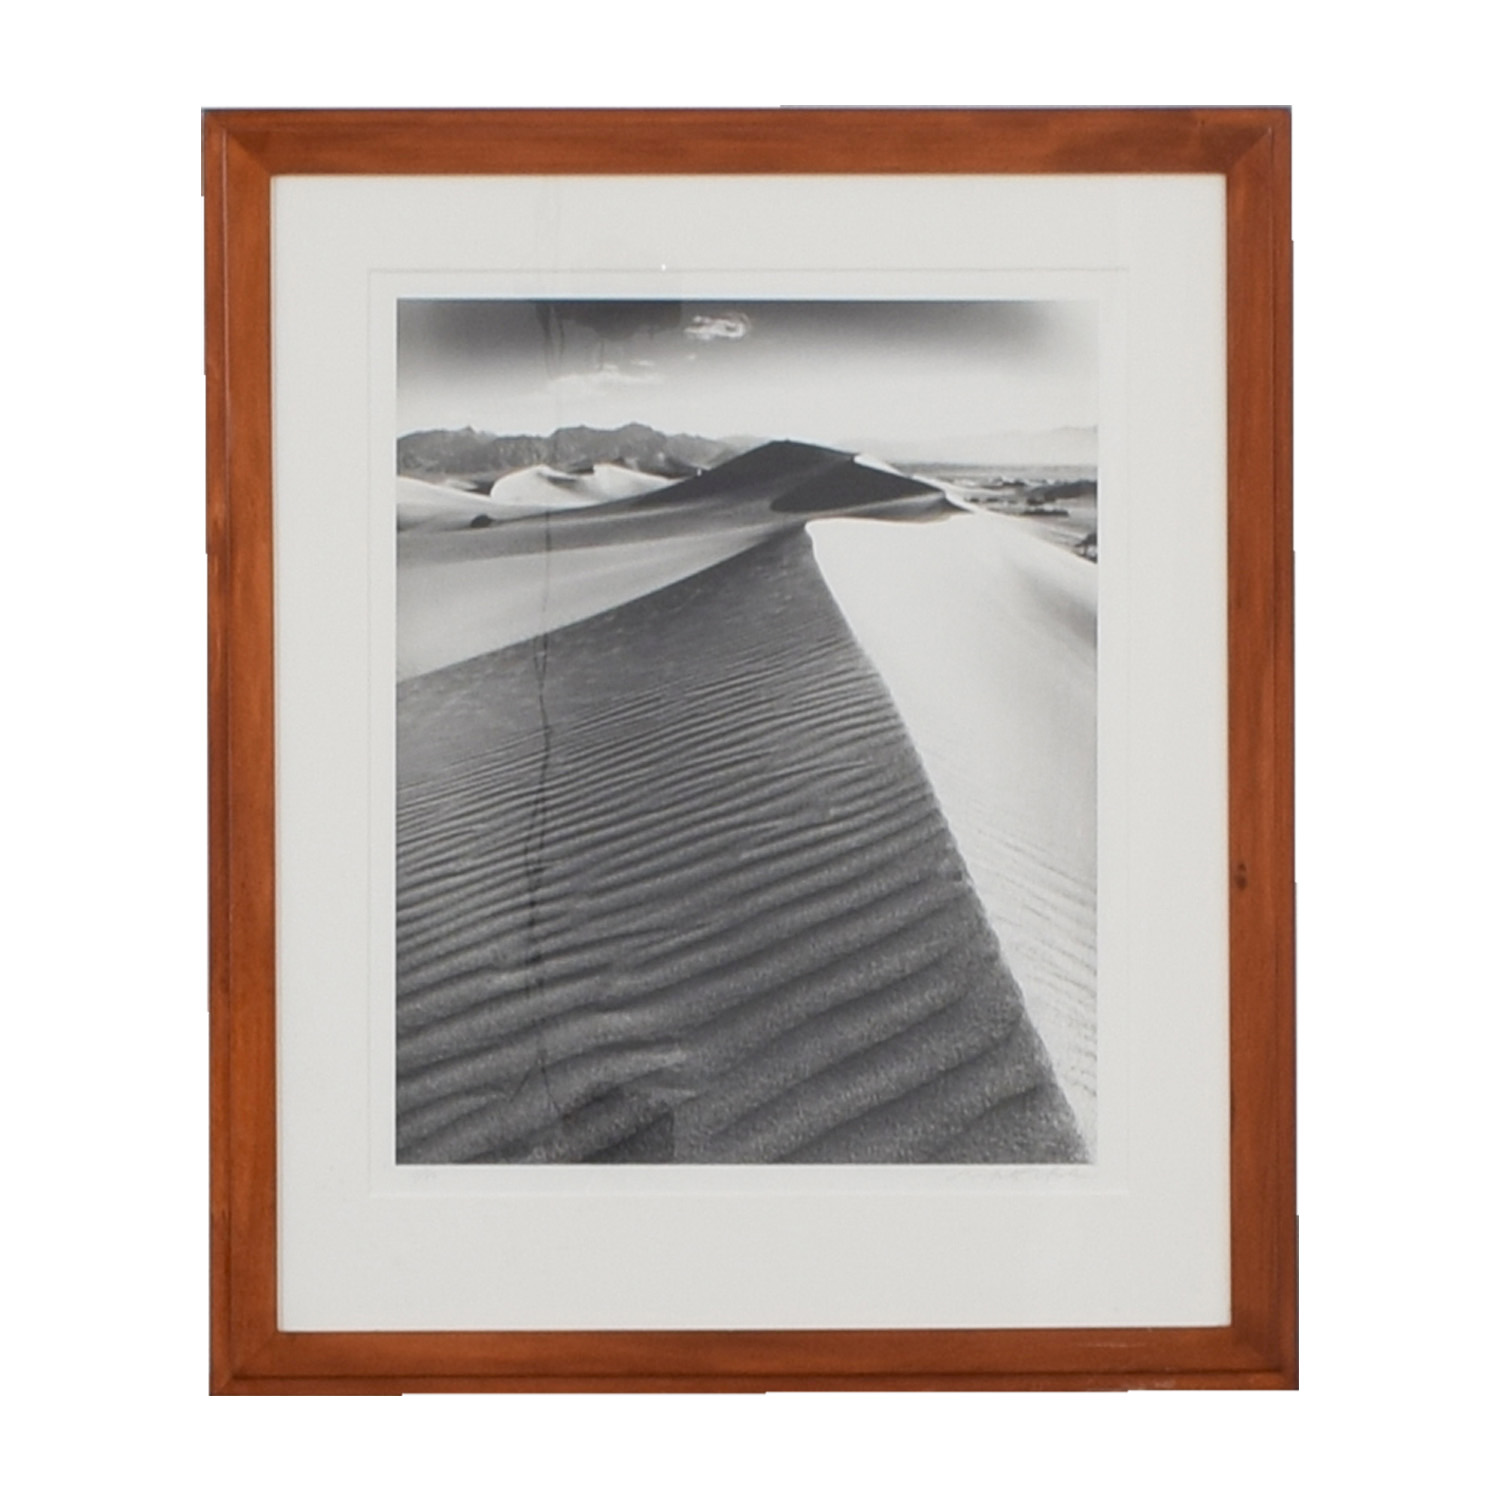 Desert Sand Framed Artwork dimensions